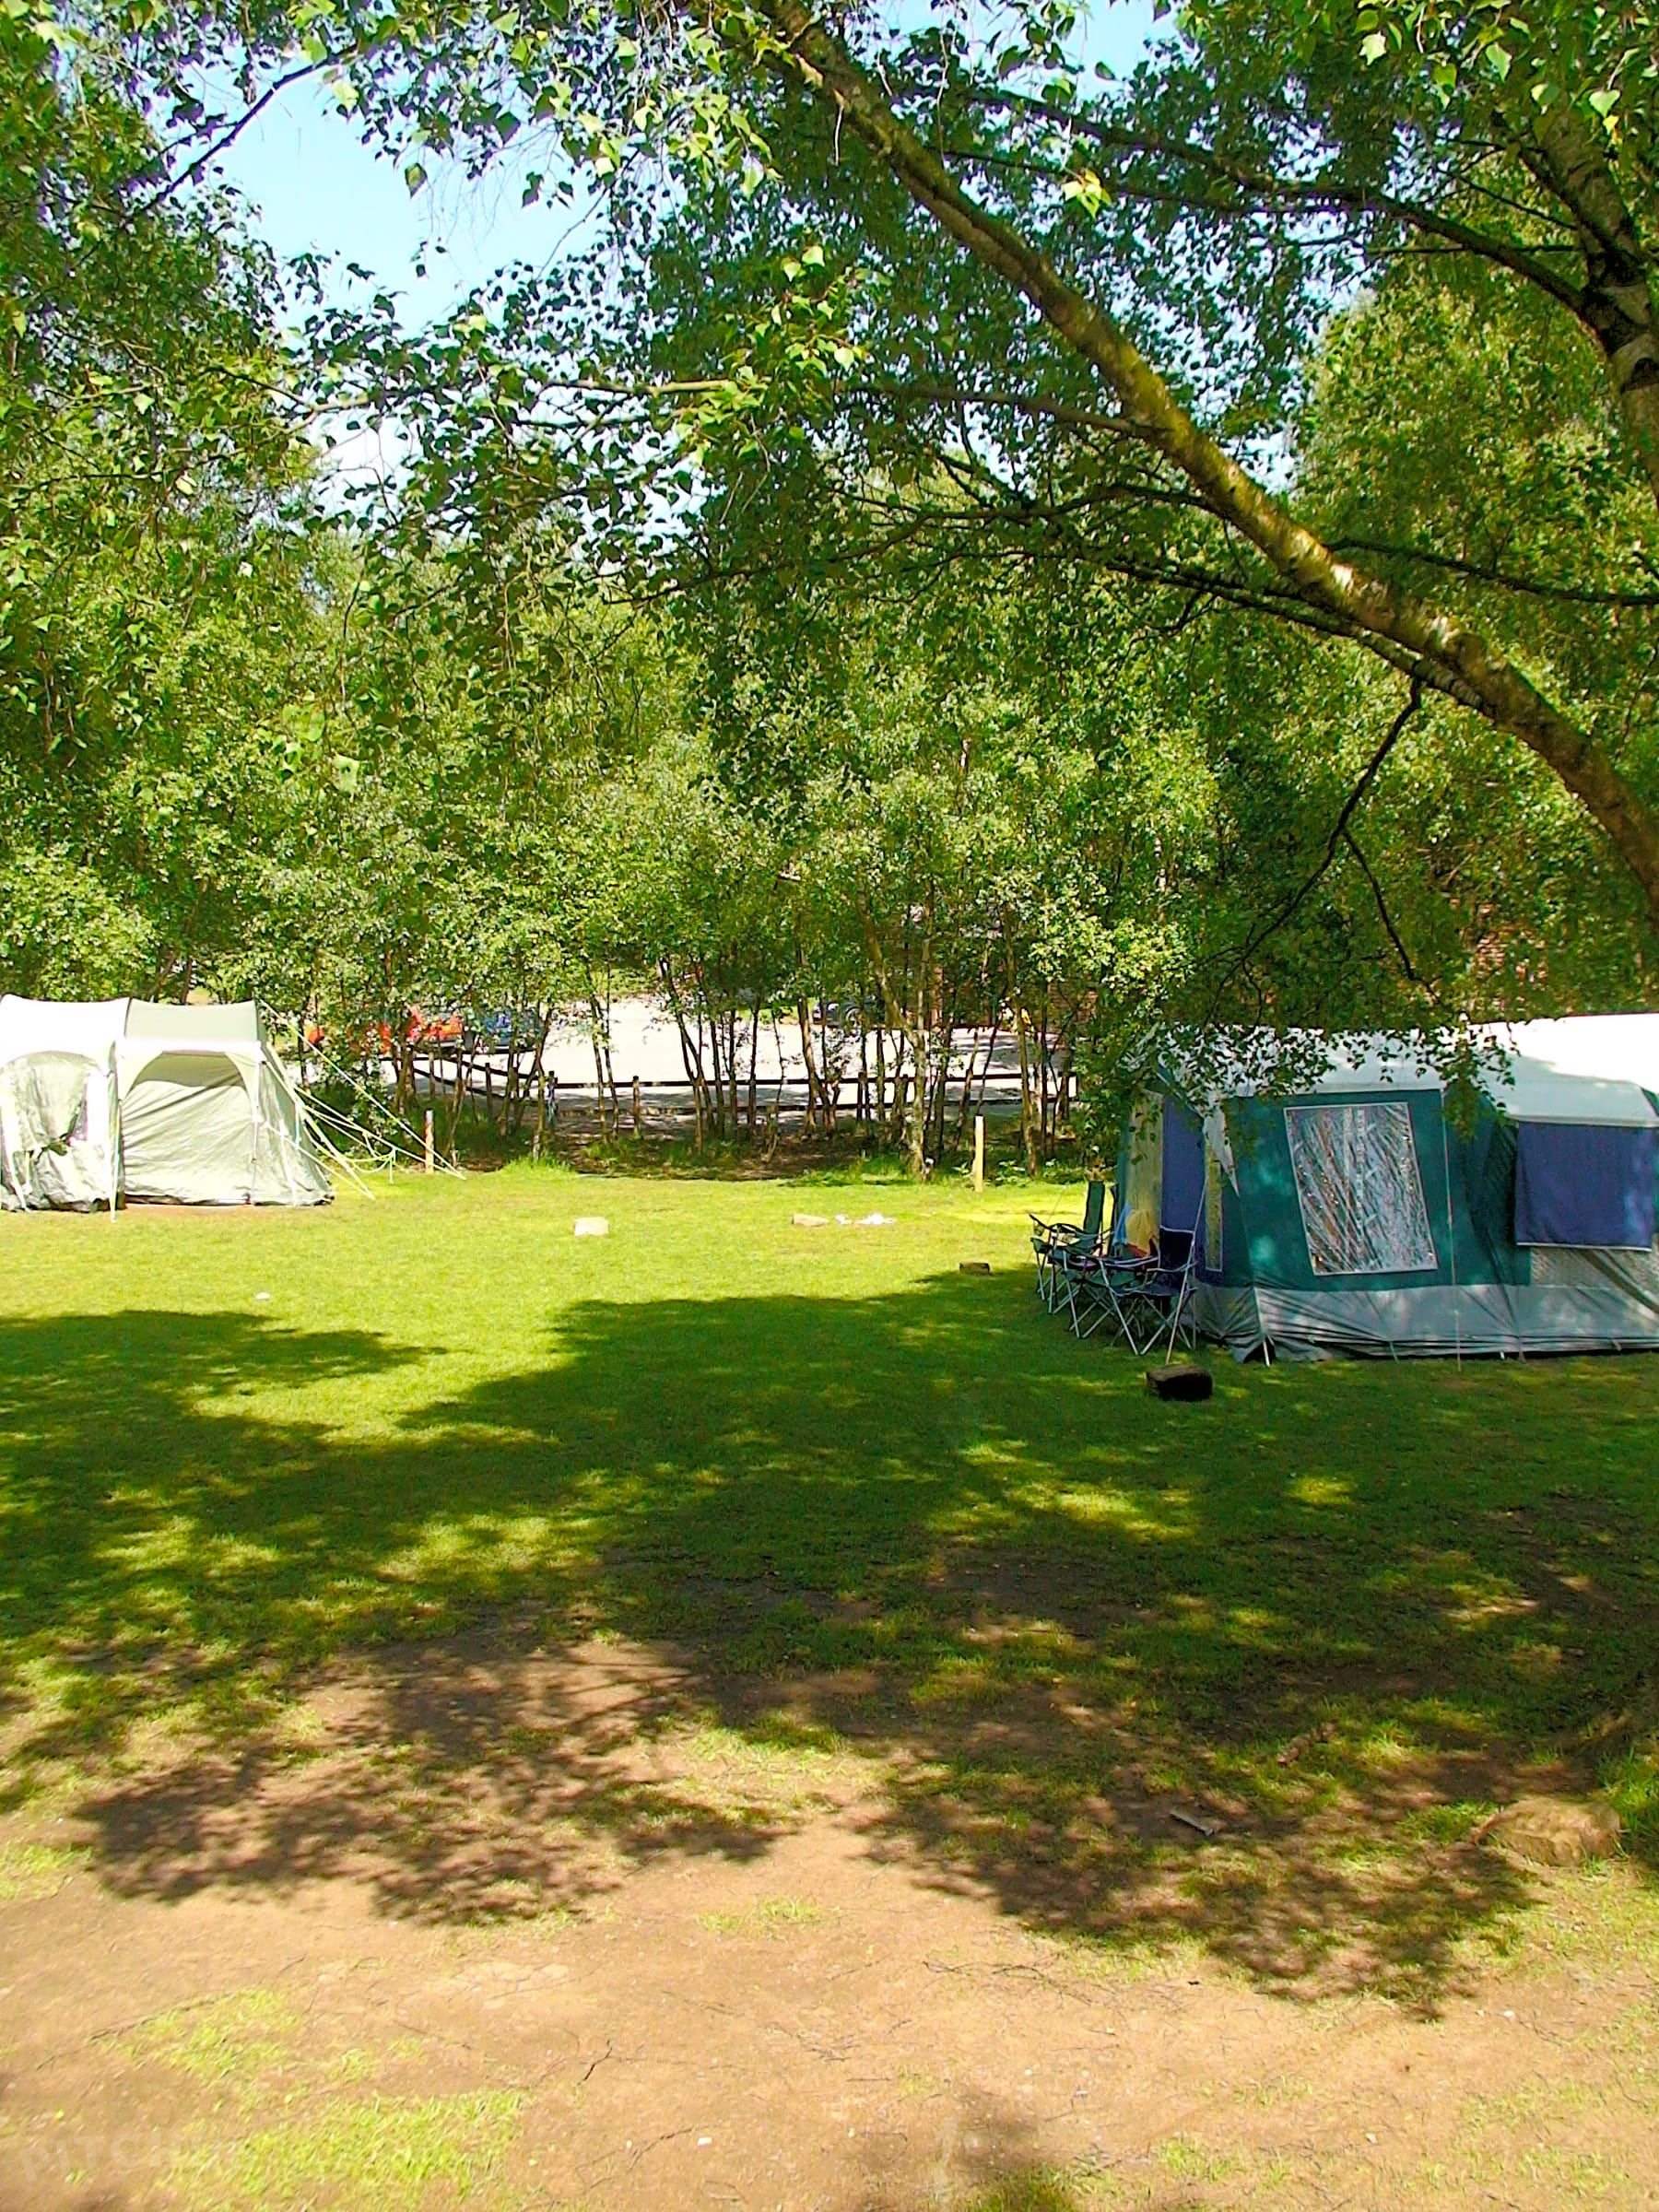 The Best Ashbourne Camping 2020 (with Prices) - Tripadvisor